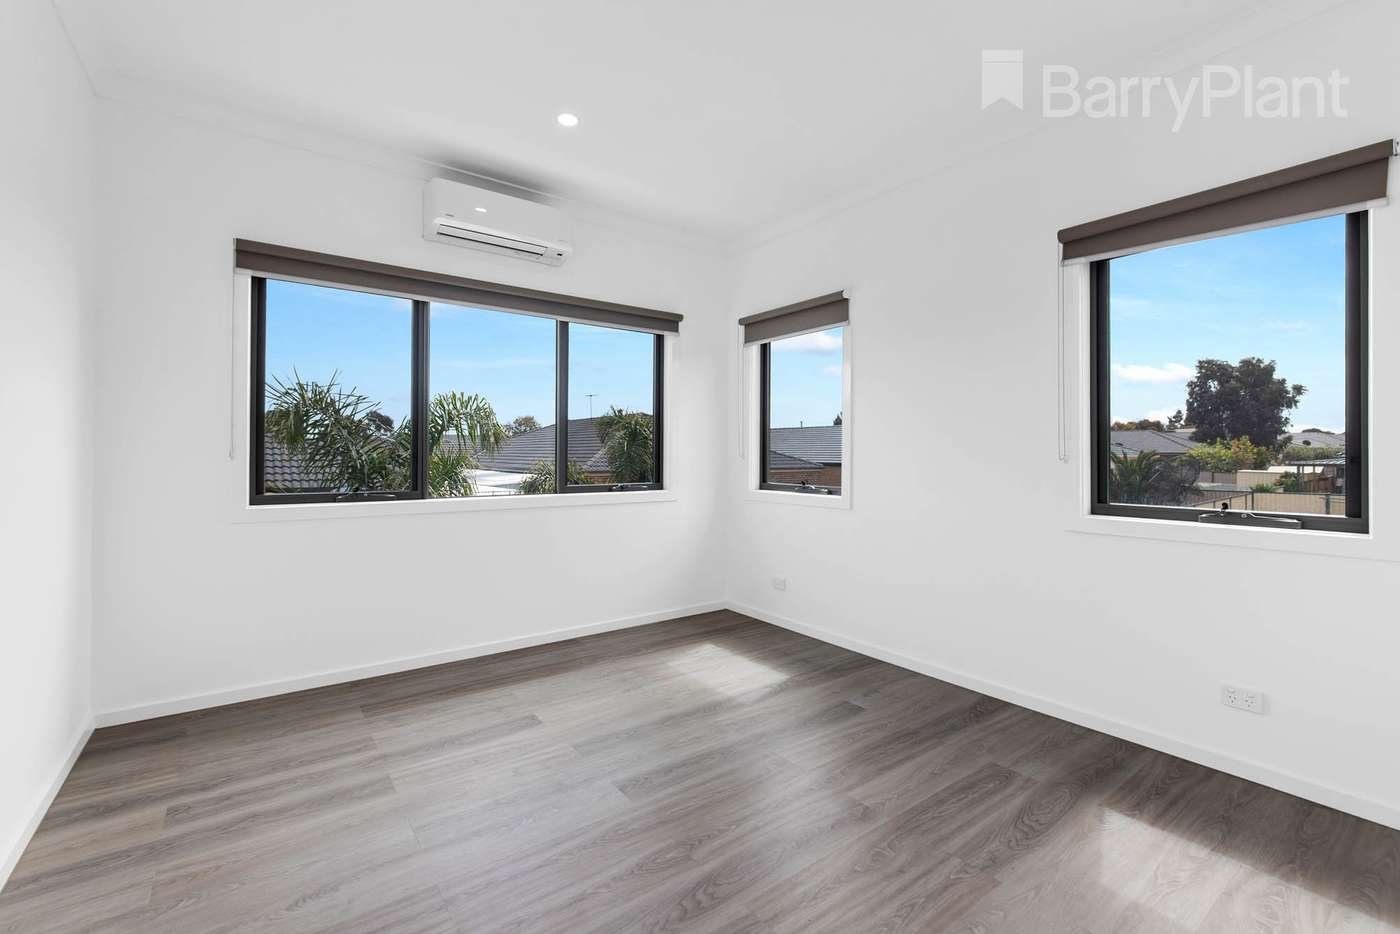 Sixth view of Homely house listing, 1/45 Katrina Drive, Burnside Heights VIC 3023